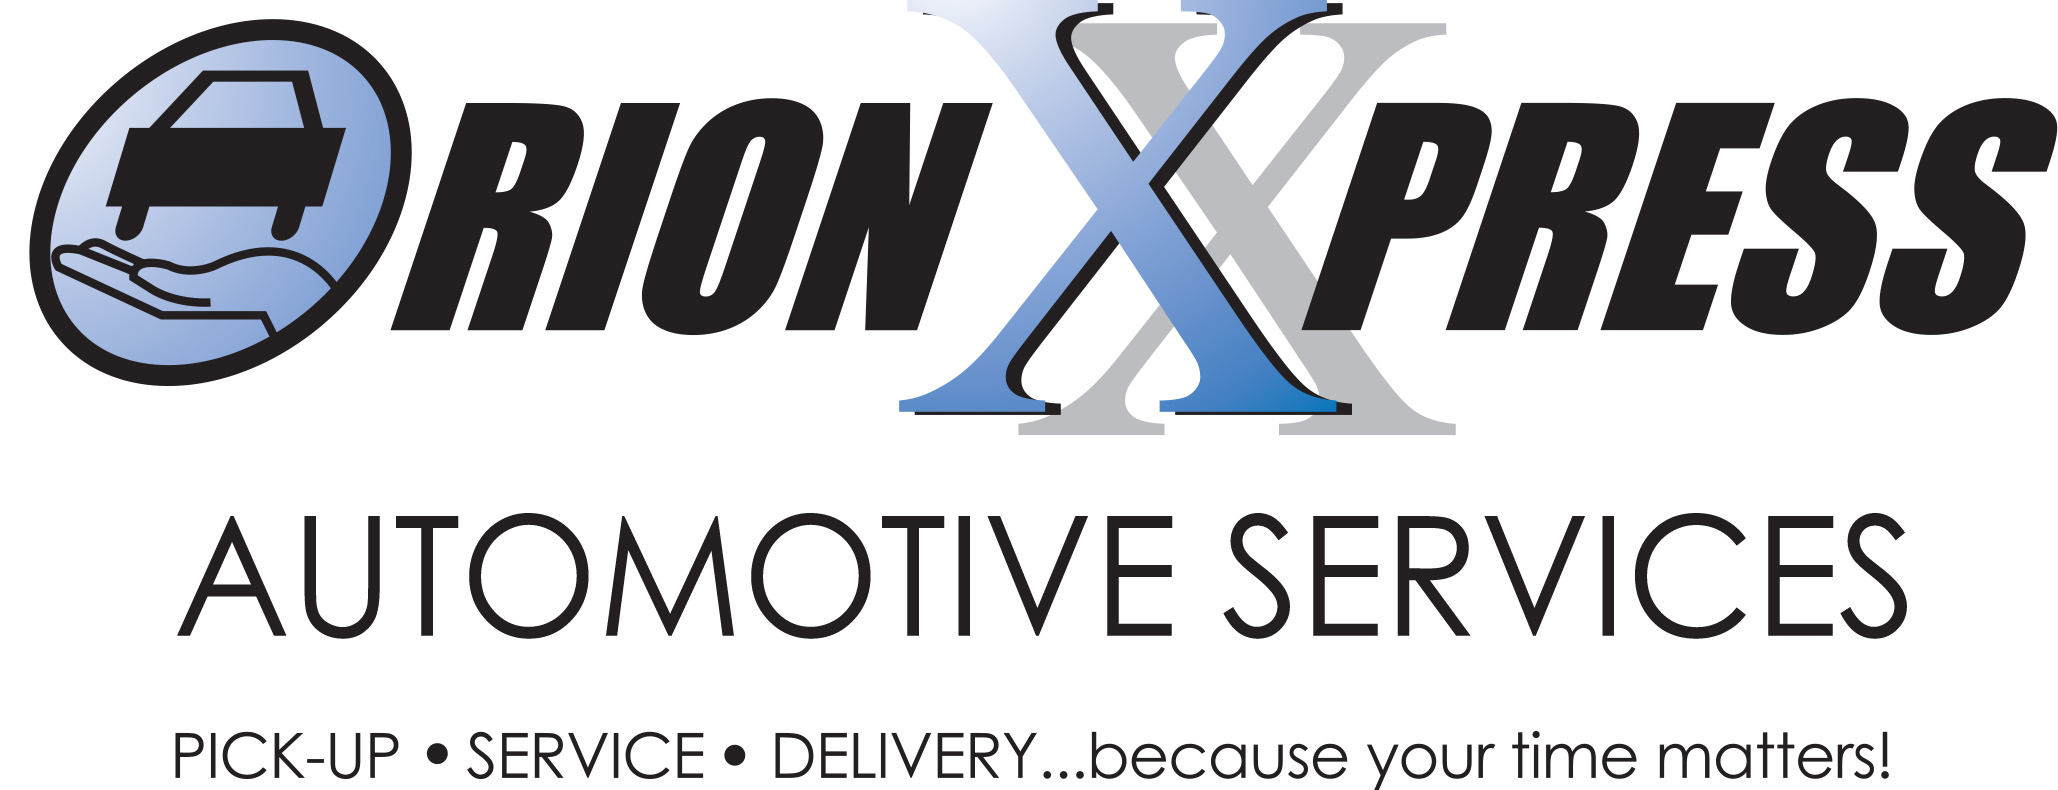 Orion  Xpress  Automotive Services